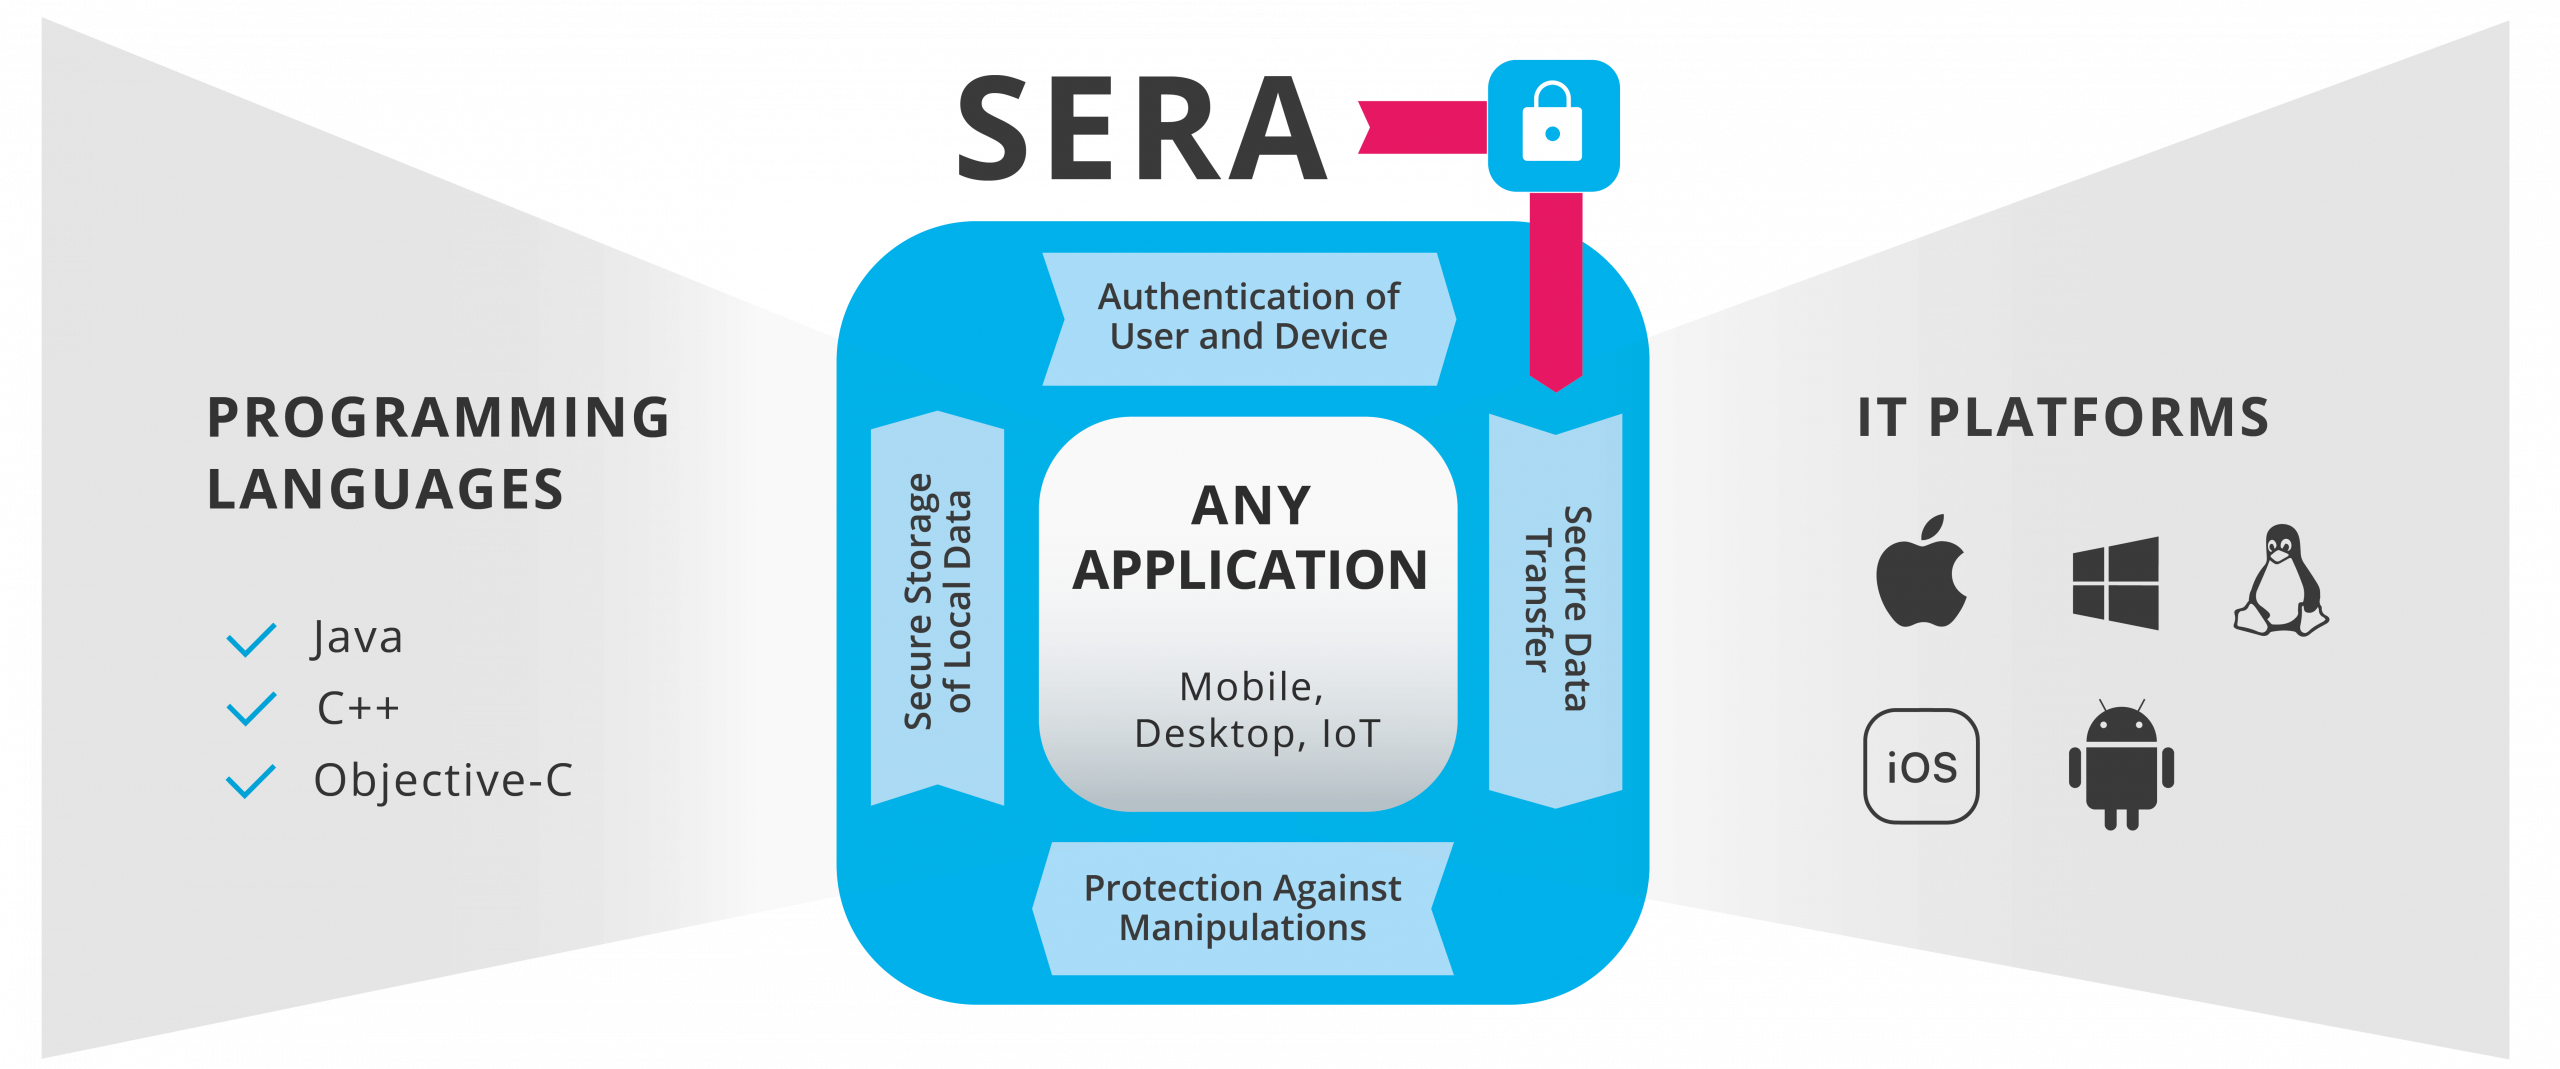 Cross-platform security framework for secure applications